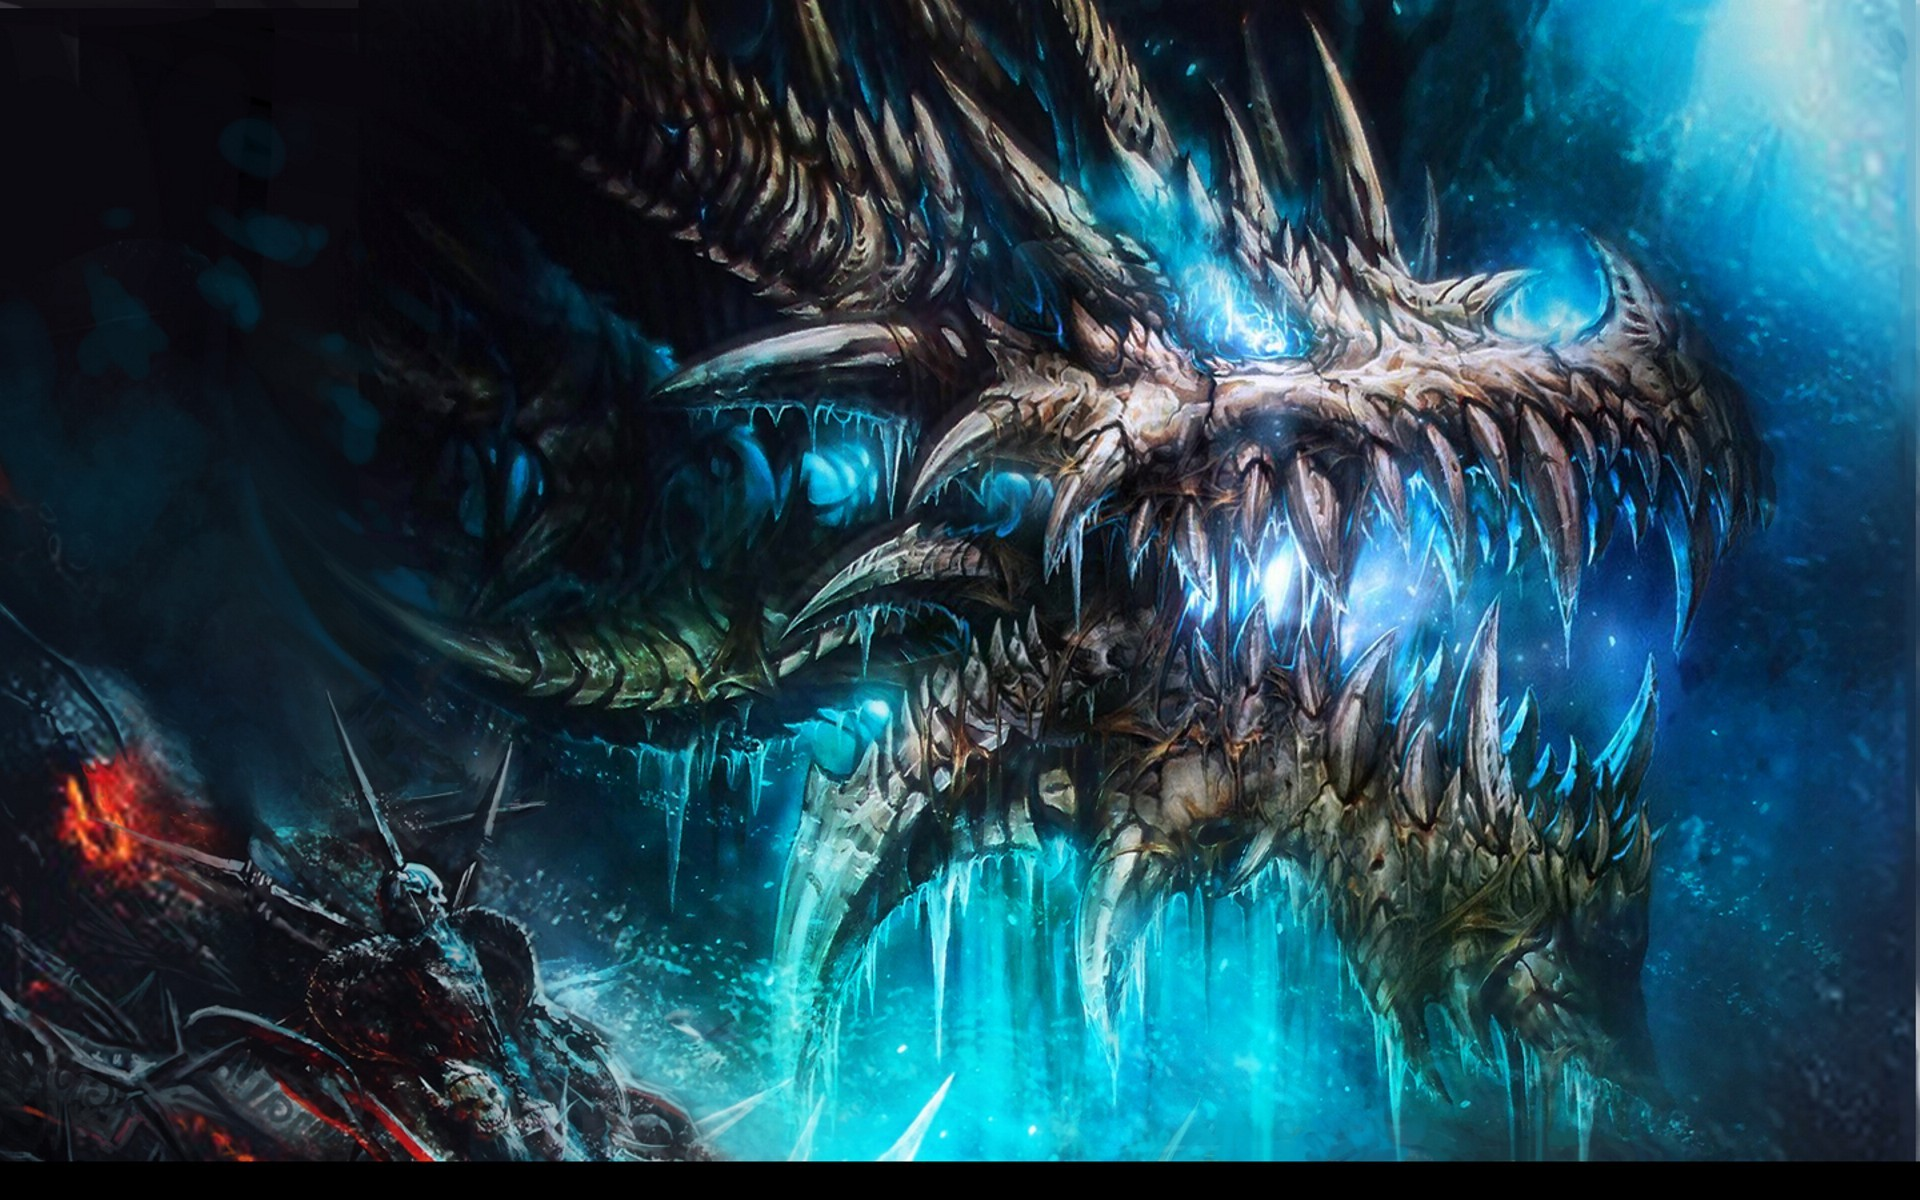 World of Warcraft Wallpapers - Top Free World of Warcraft ... | 1200x1920